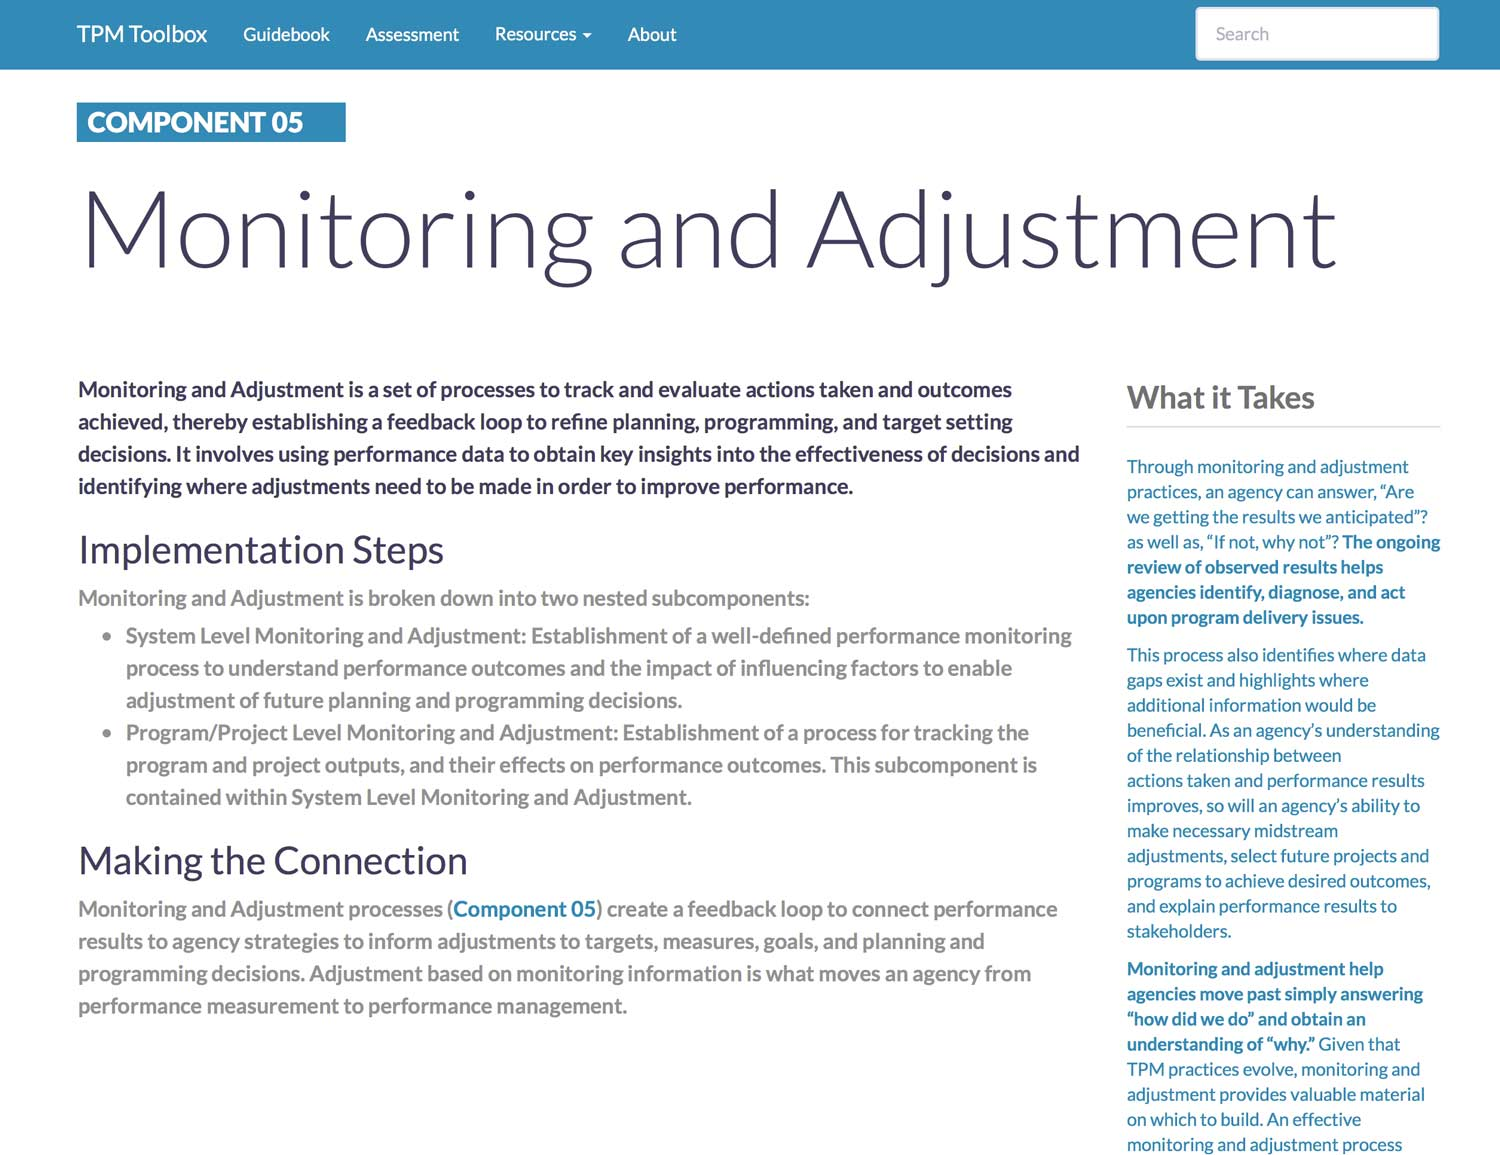 Thumbnail image of Component 05 Summary webpage. Monitoring and Adjustment is a set of processes to track and evaluate actions taken and outcomes achieved, thereby establishing a feedback loop to refine planning, programming, and target setting decisions.